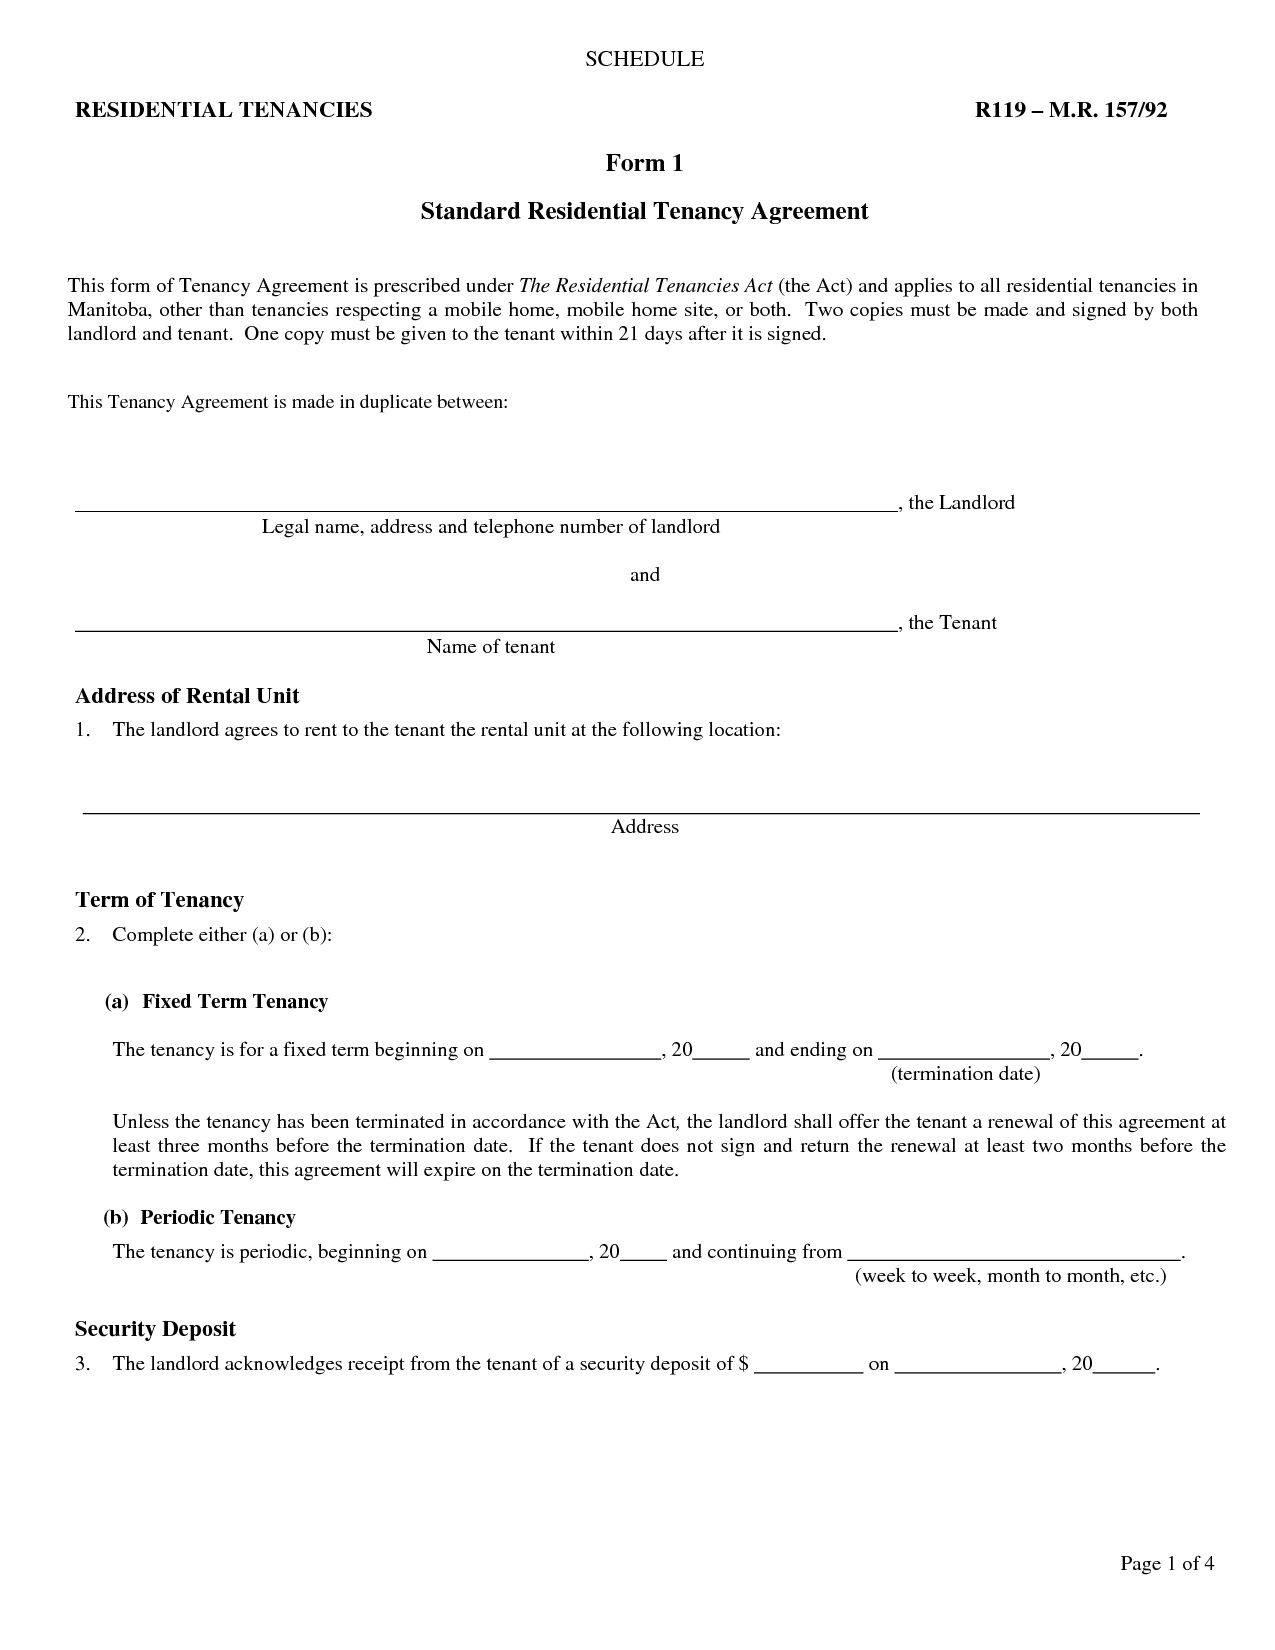 002 Surprising Renter Lease Agreement Template High Definition  Apartment Form Early Termination Of By Tenant South Africa FreeFull